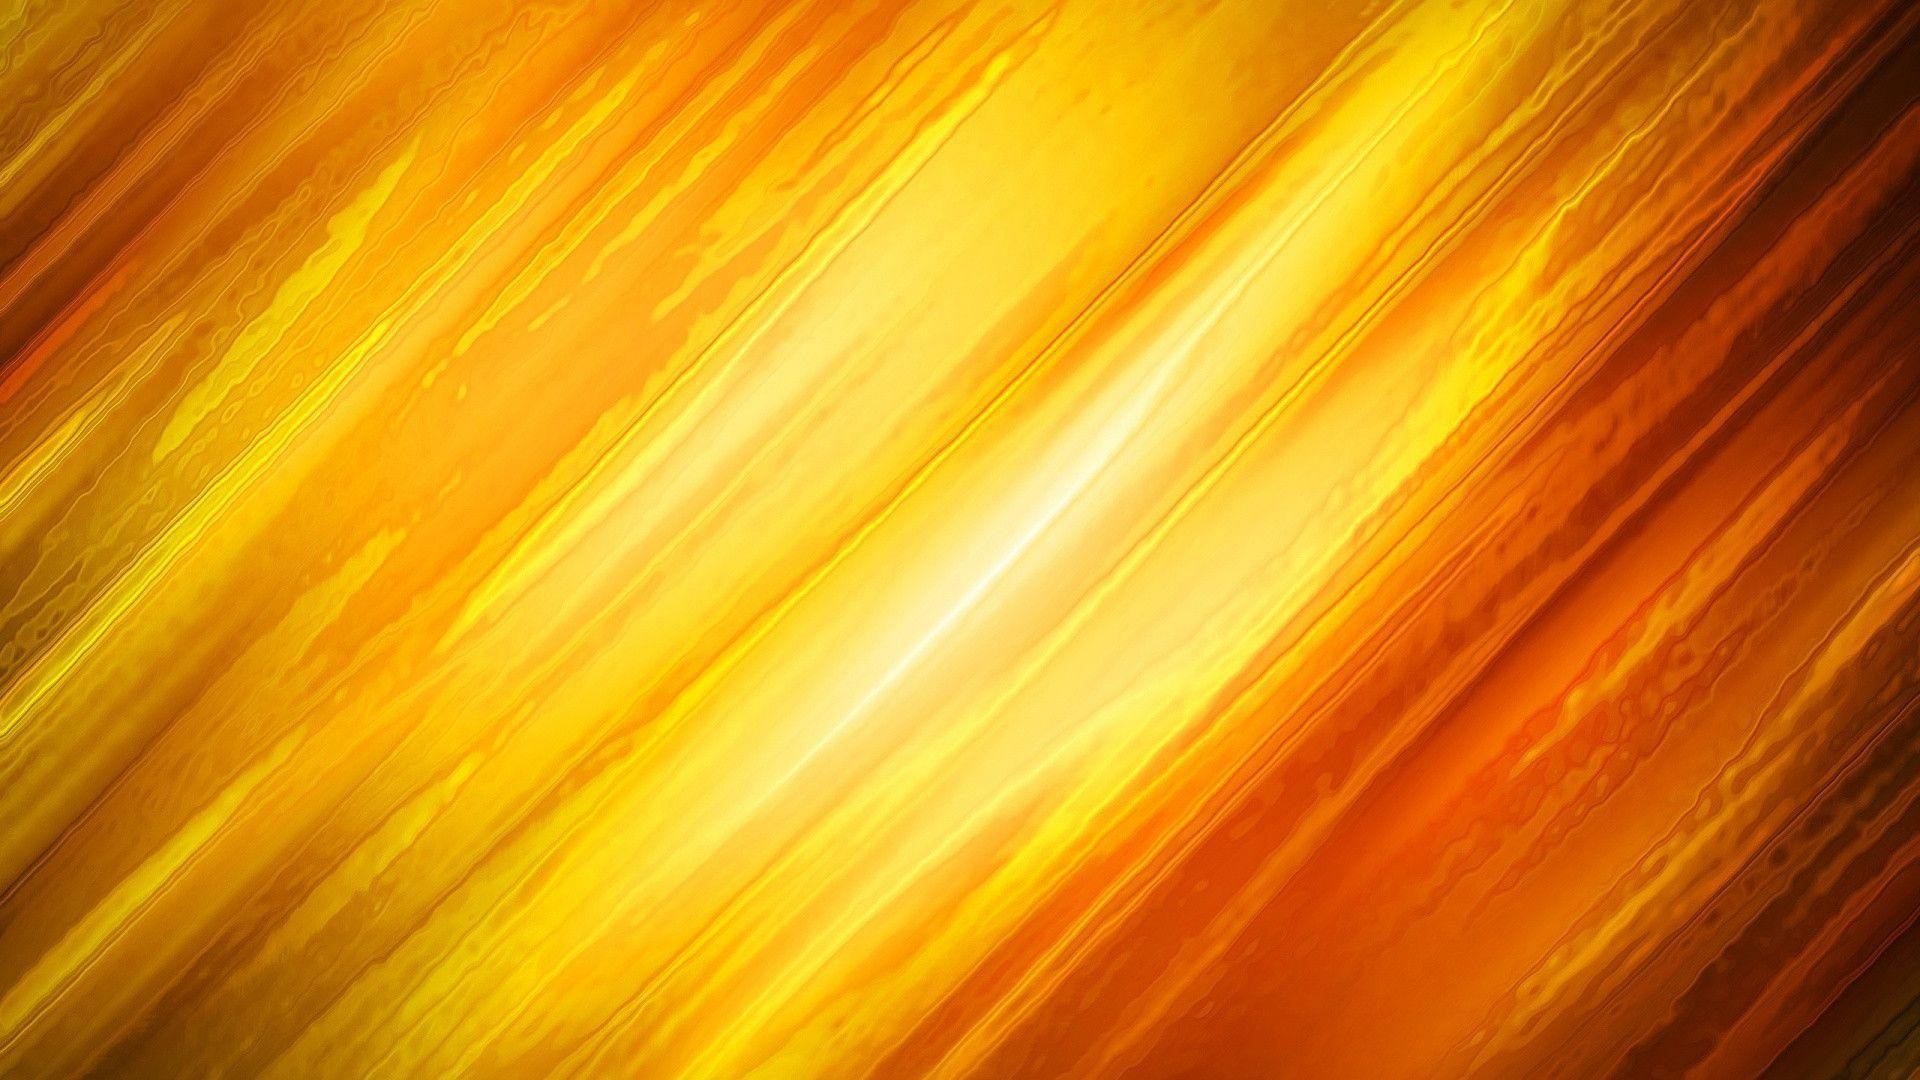 White And Yellow Abstract Wallpaper Hd Cool 7 HD Wallpapers | isghd.